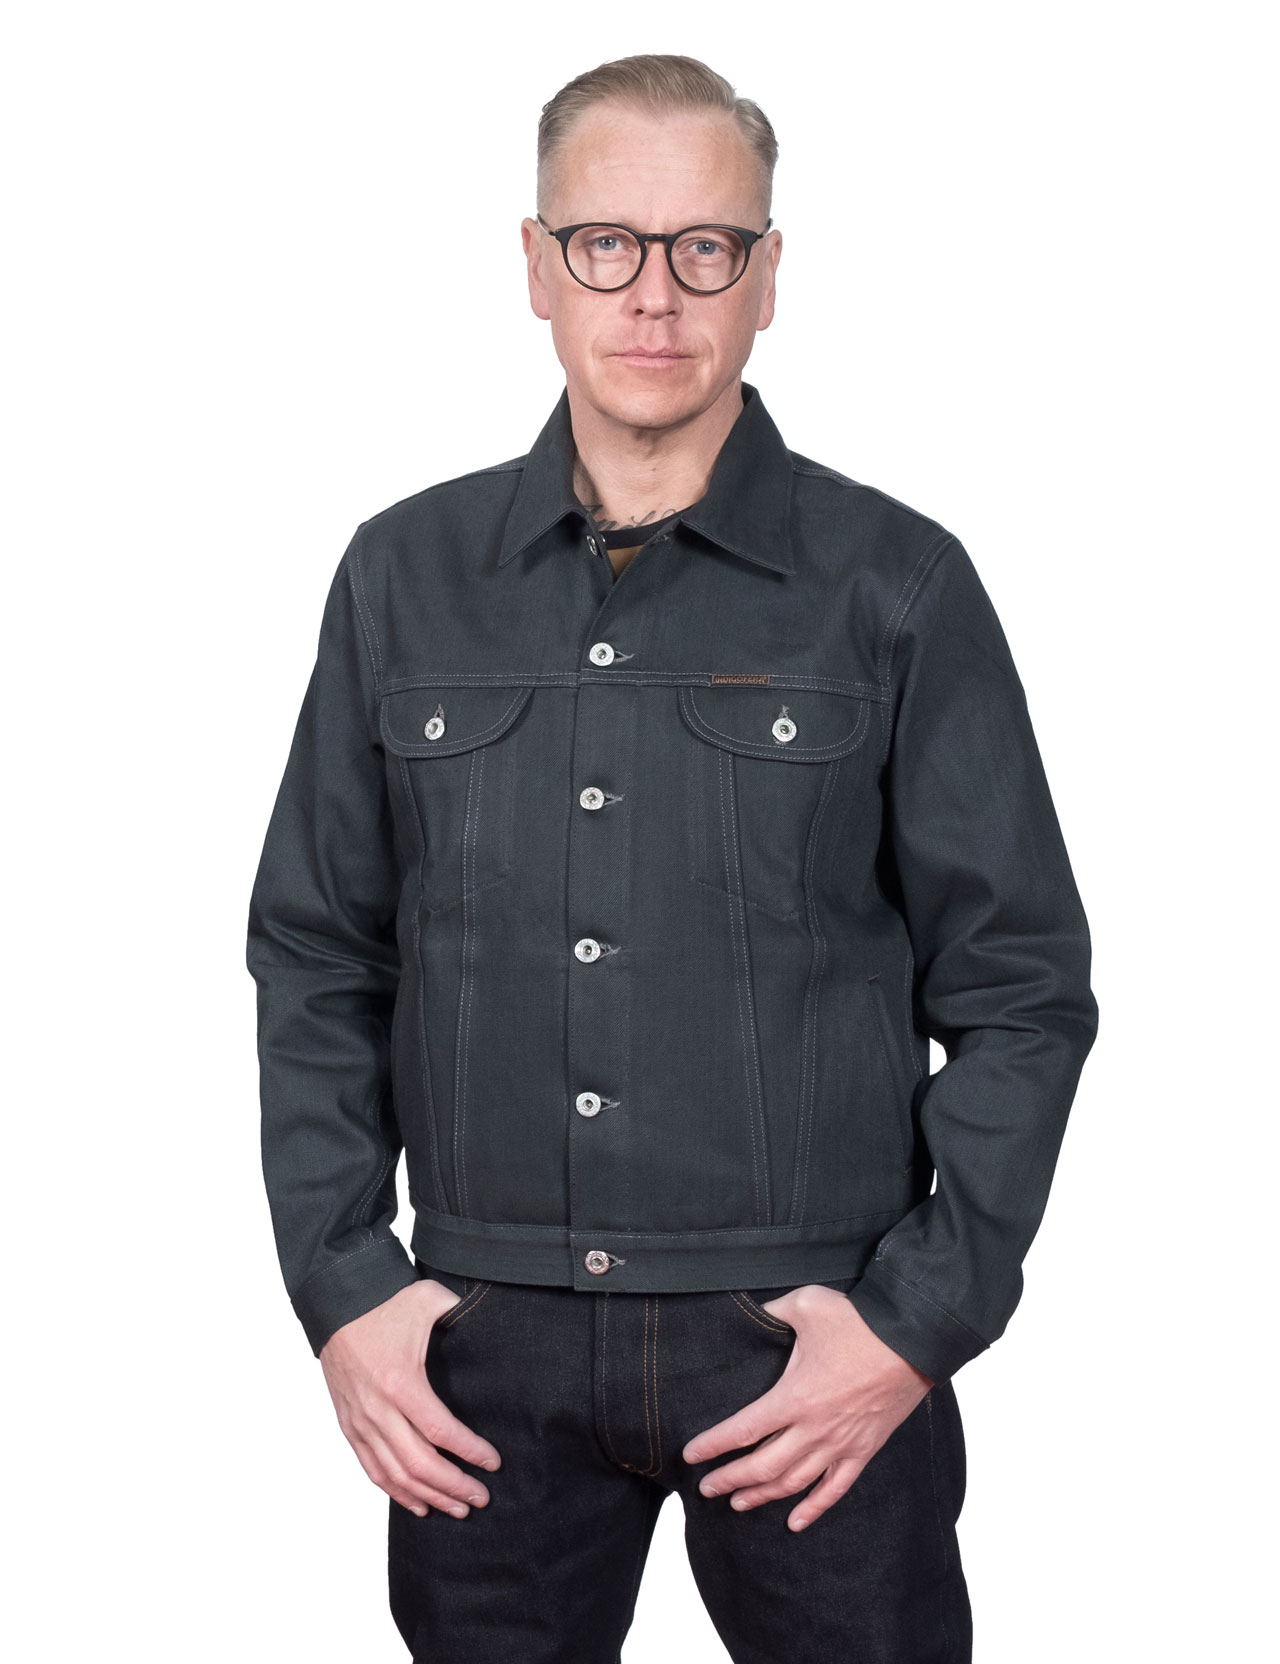 Indigofera - Banks Denim Jacket - Powderville 12 oz